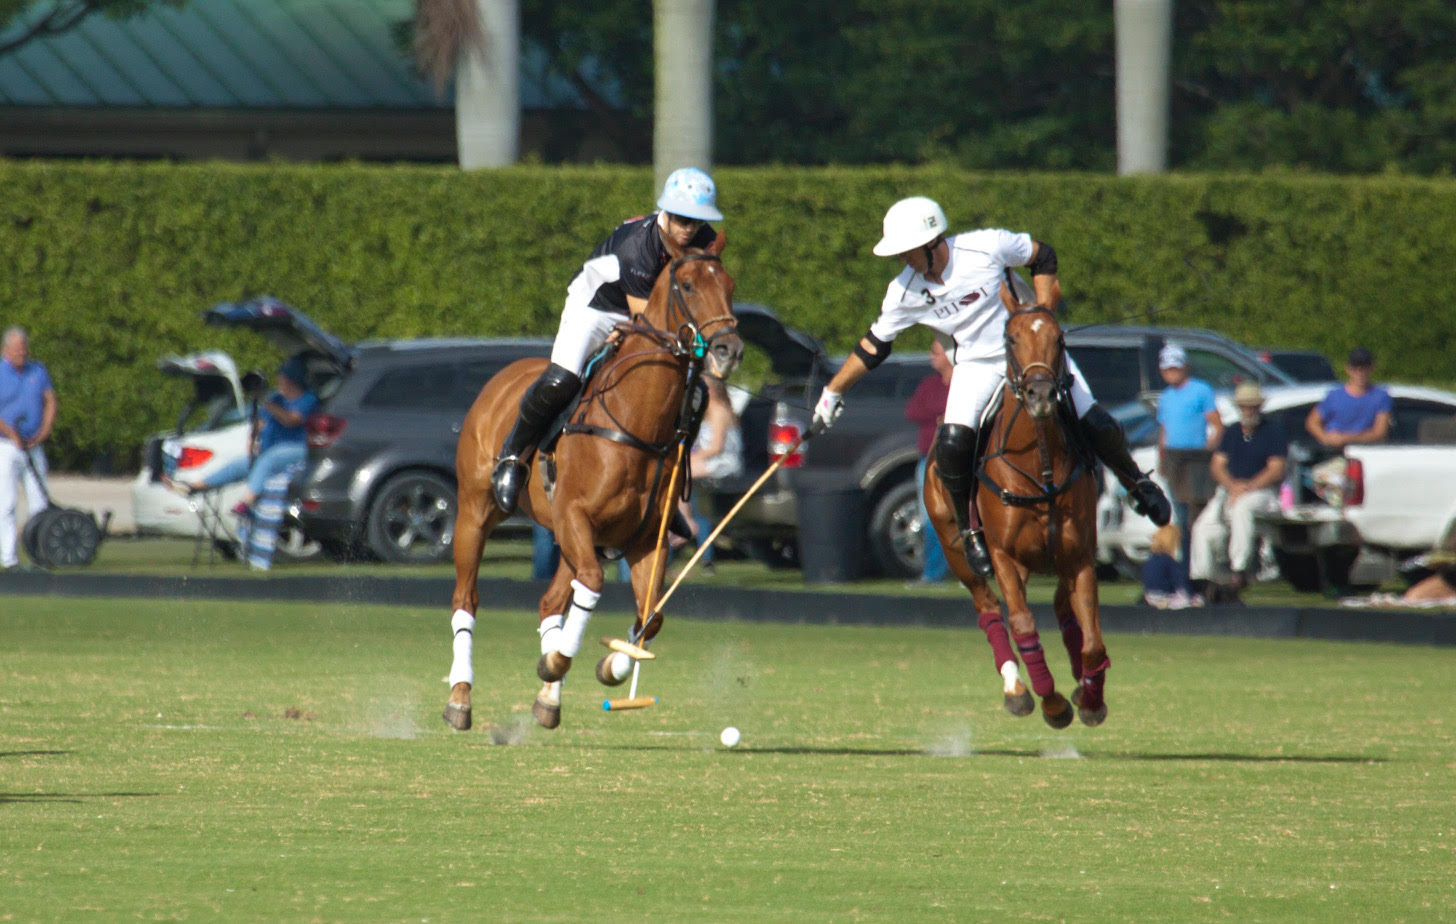 Brothers Nico Pieres of Audi and Gonzalito Pieres of Pilot battle for the ball.